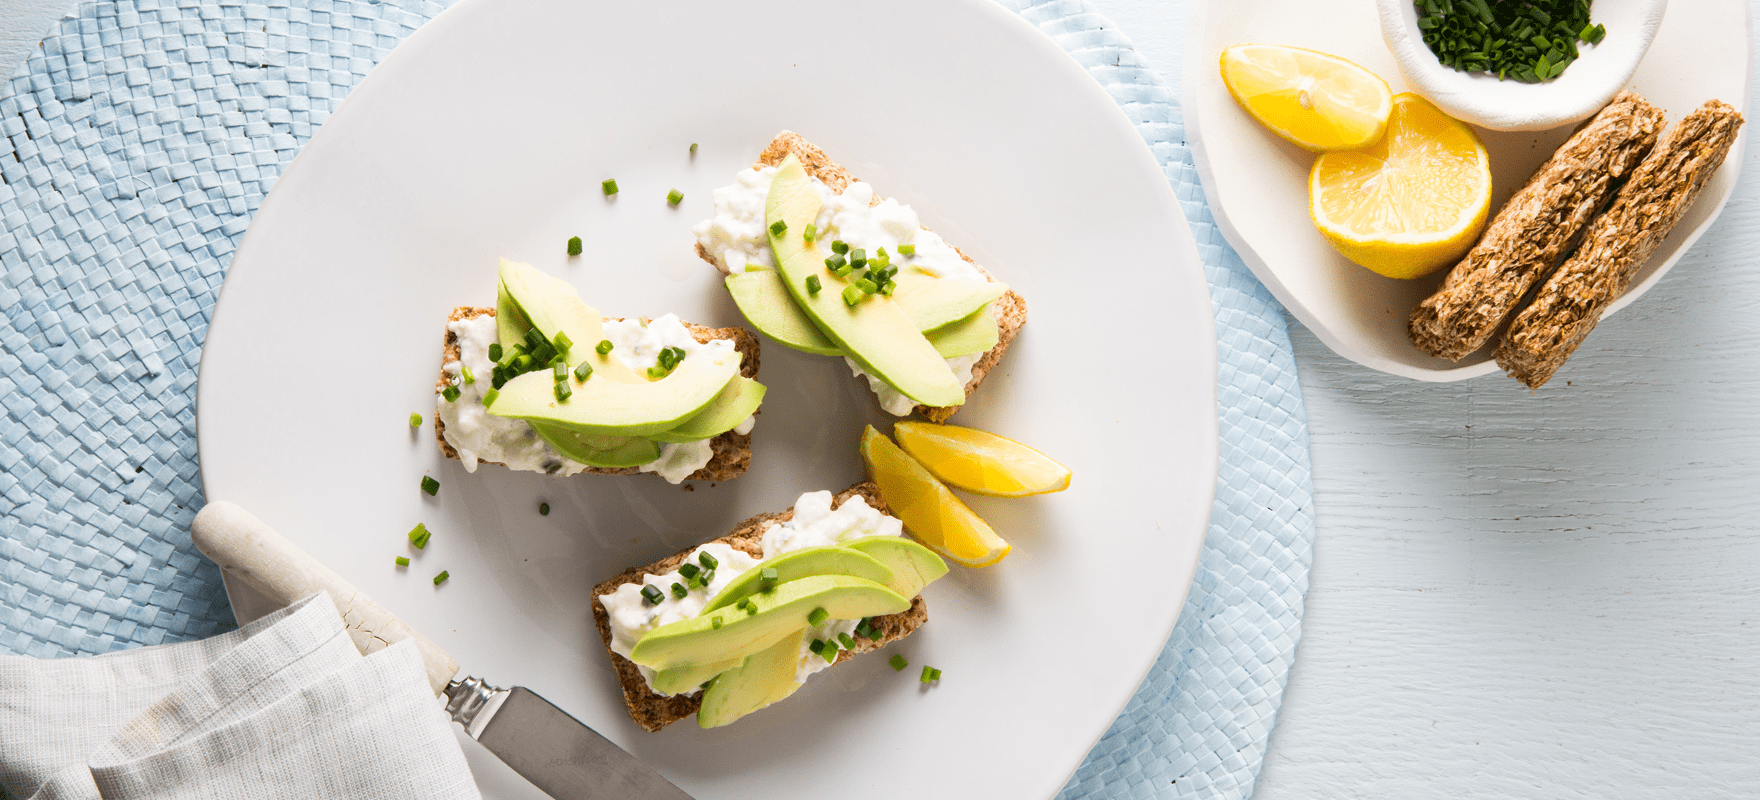 Avocado and cottage cheese on Weet-Bix™ image 1